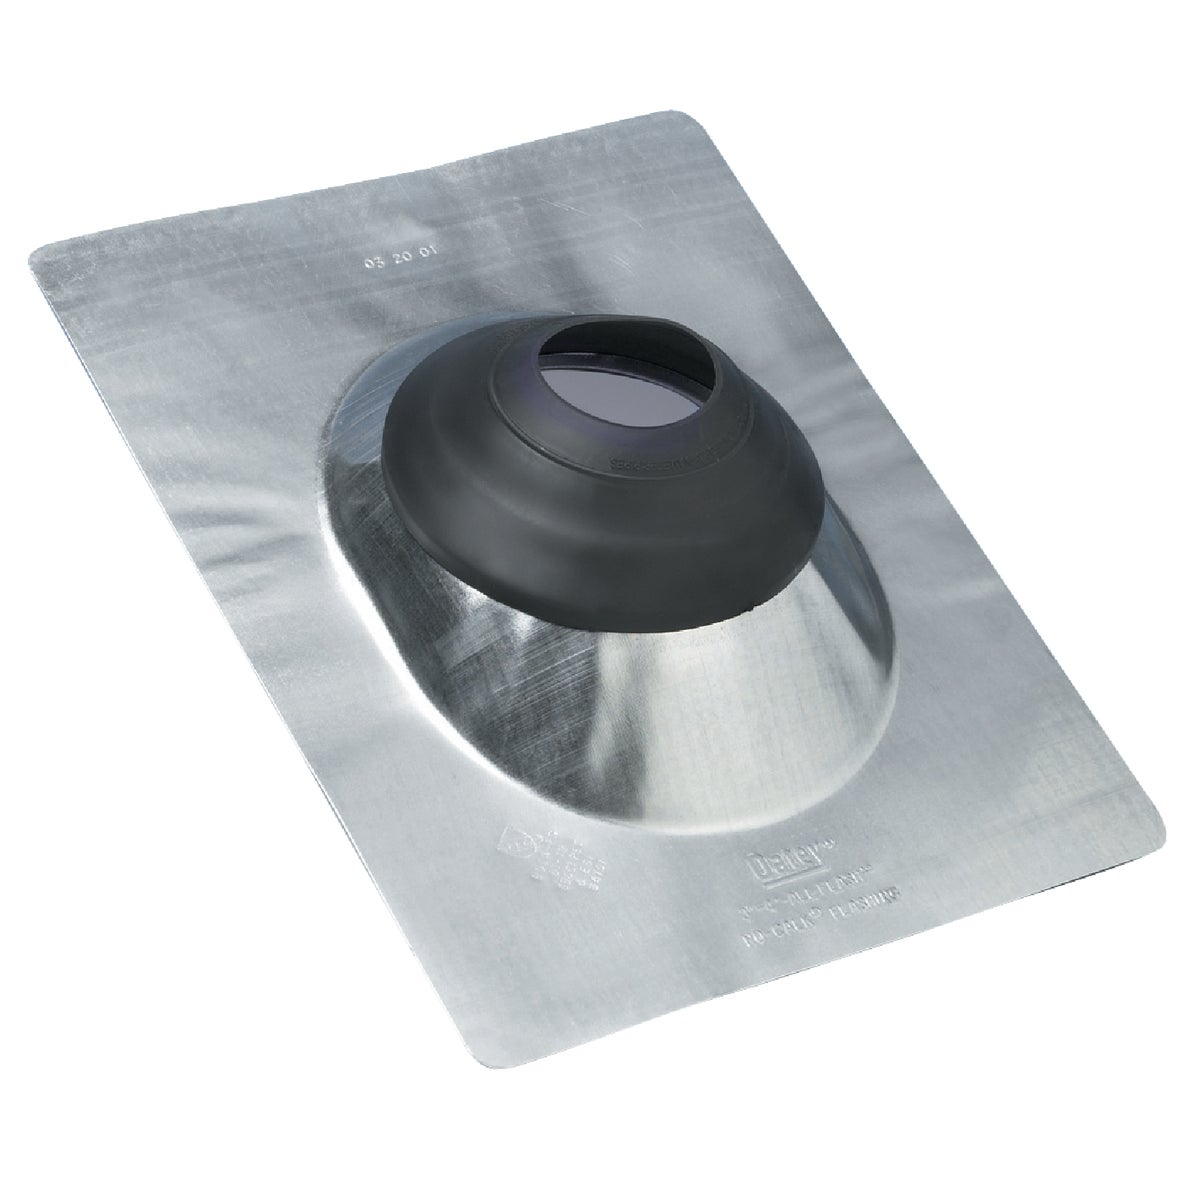 "1-1/2""GALV ROOF FLASHING - 11841 by Oatey Scs"